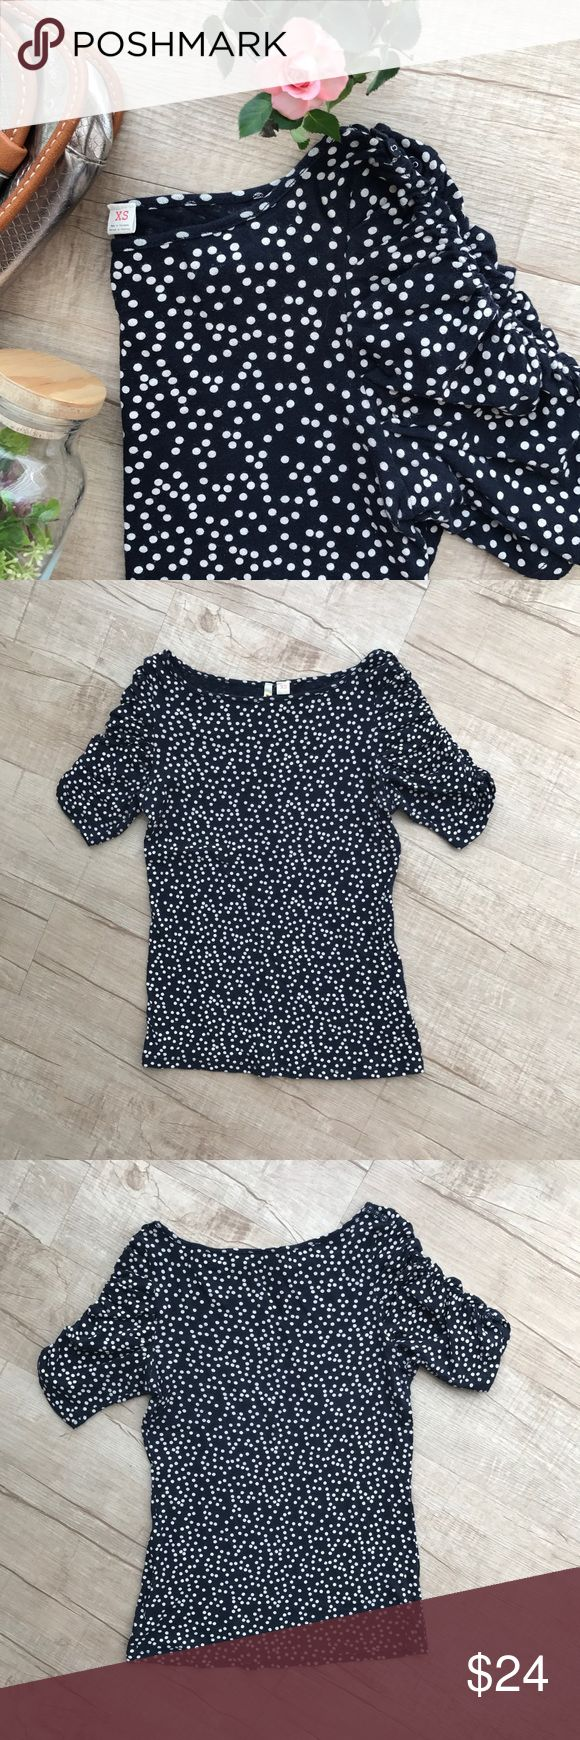 """Little Yellow Button Polka Dot Tee * navy blue w/ivory polka dots * adorable ruched sleeve  * button detail on shoulder & sleeve * bust (laid flat, on one side) - 14"""" * length - 23"""" * 100% Cotton * good used condition Anthropologie Tops Tees - Short Sleeve"""